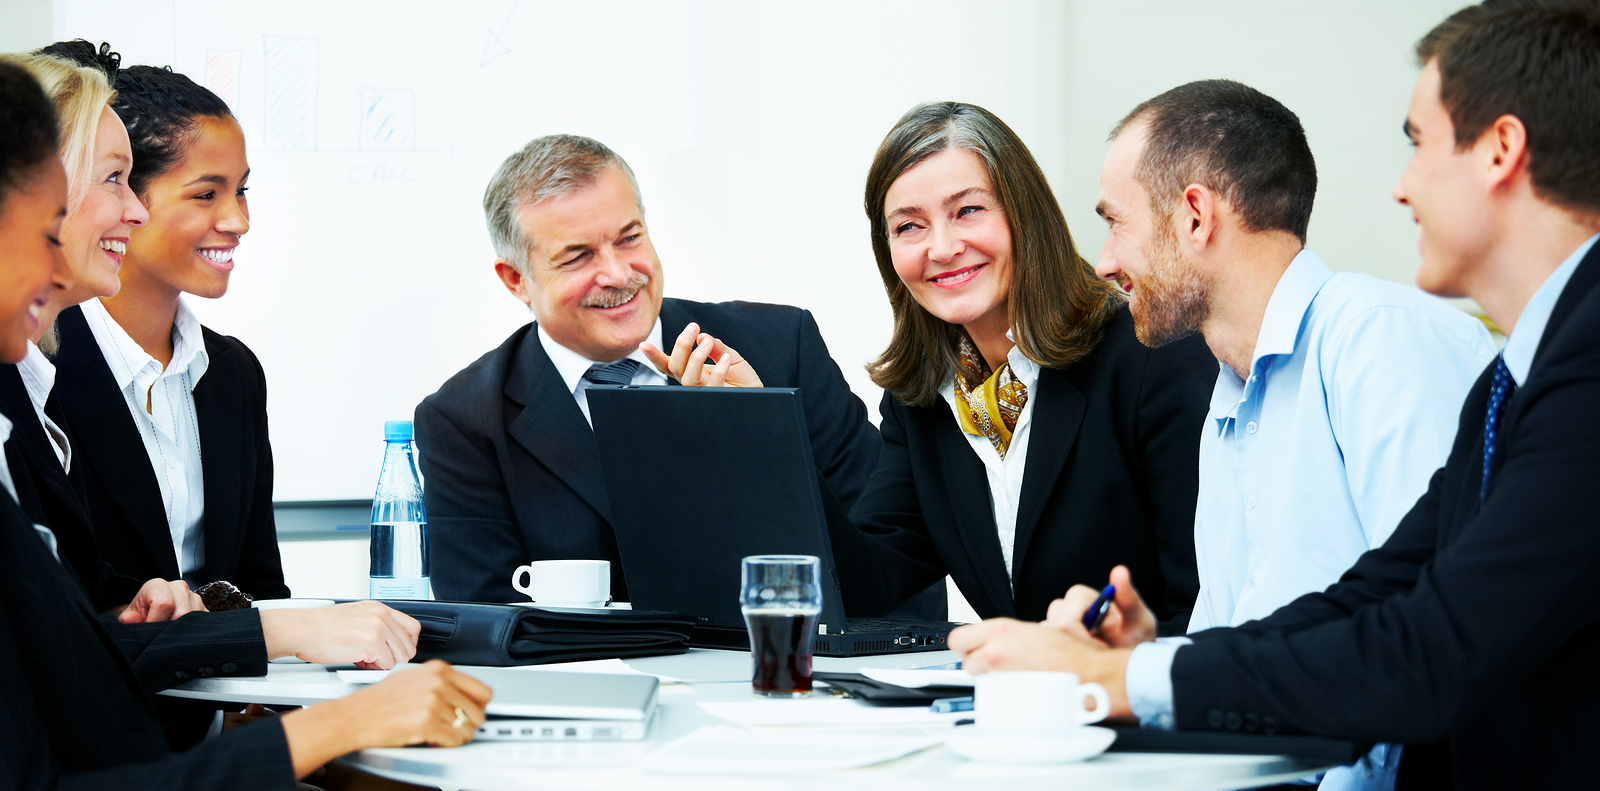 Diverse business group meeting | IBAR Critical Thinking Method